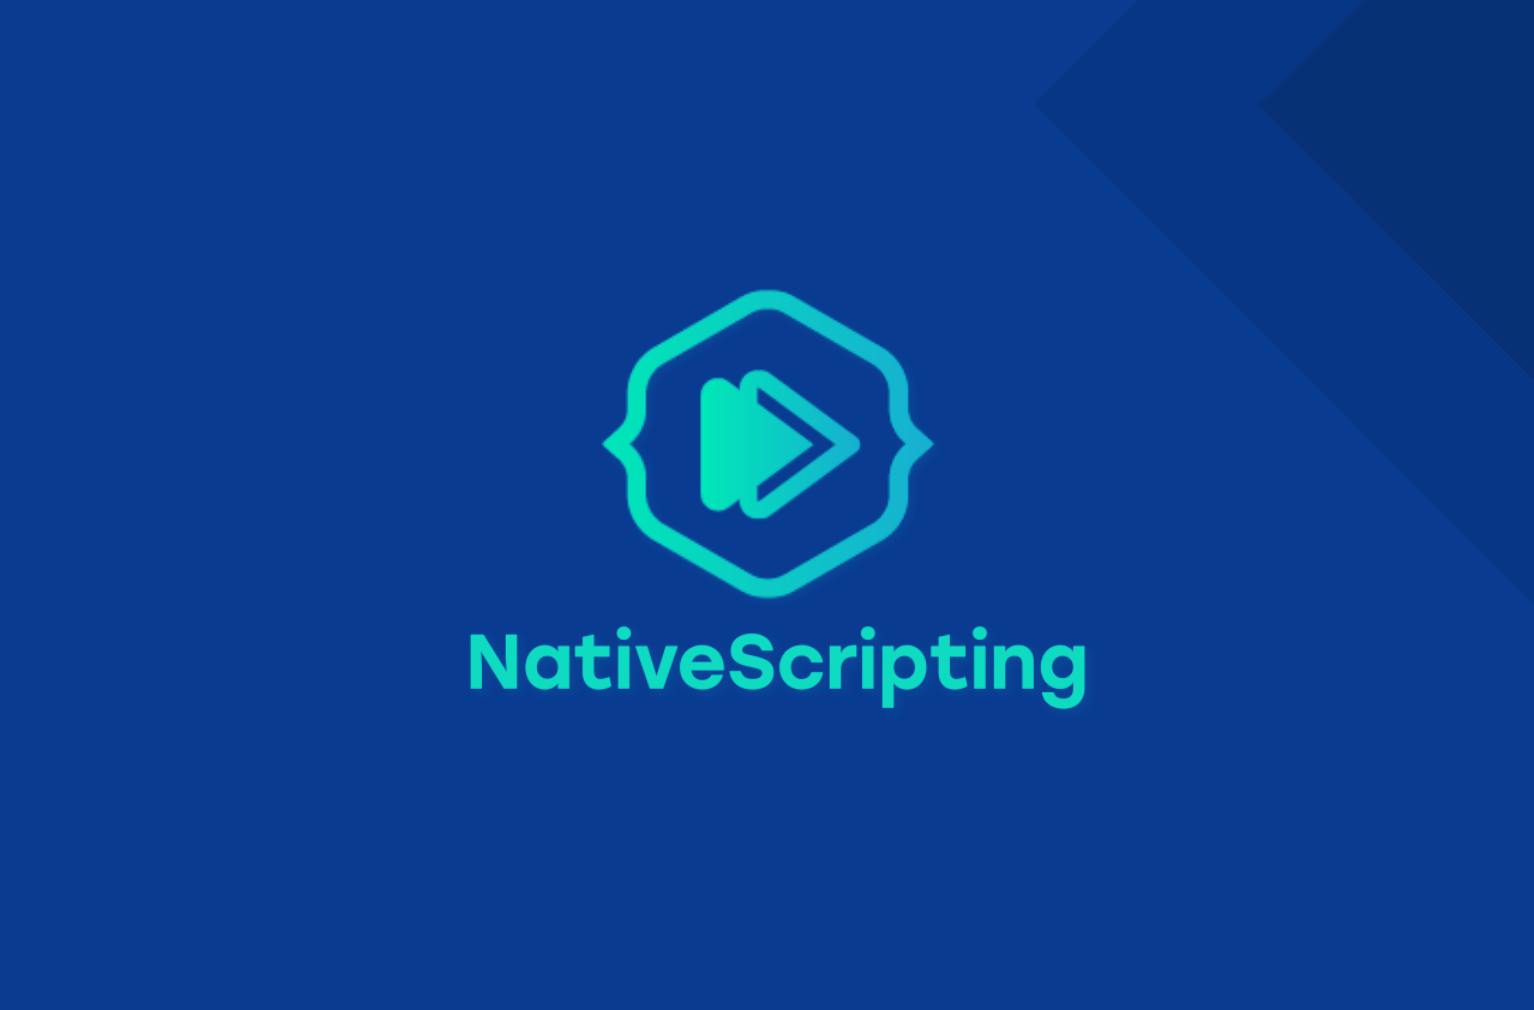 nativescripting-splash.png